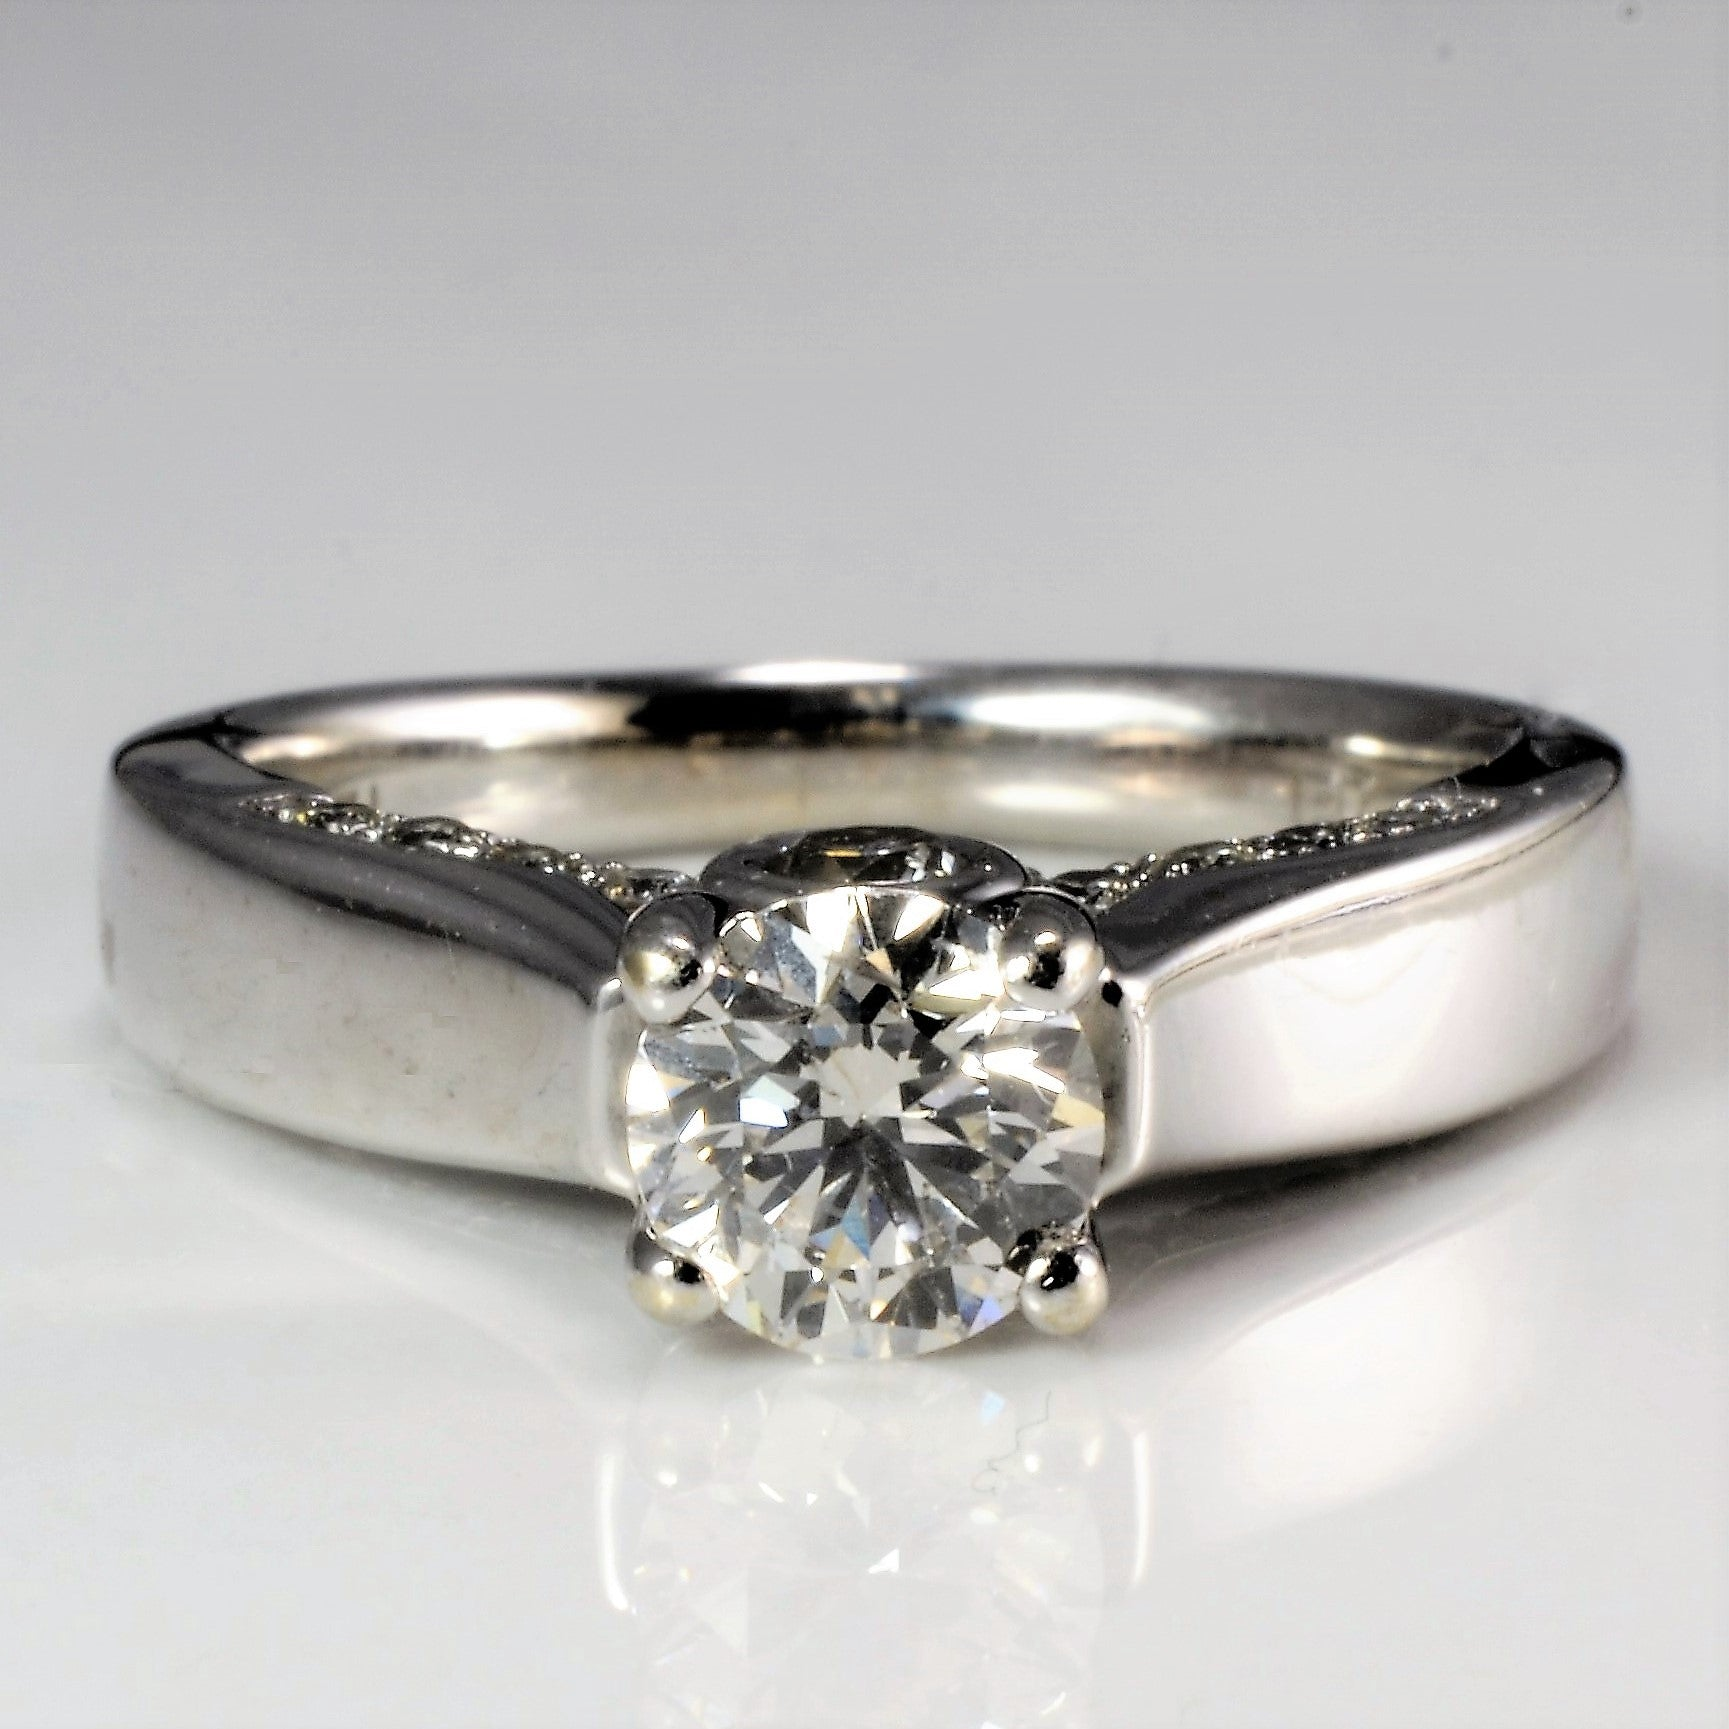 High Set Diamond Engagement Ring | 1.26 ctw, SZ 5.5 |